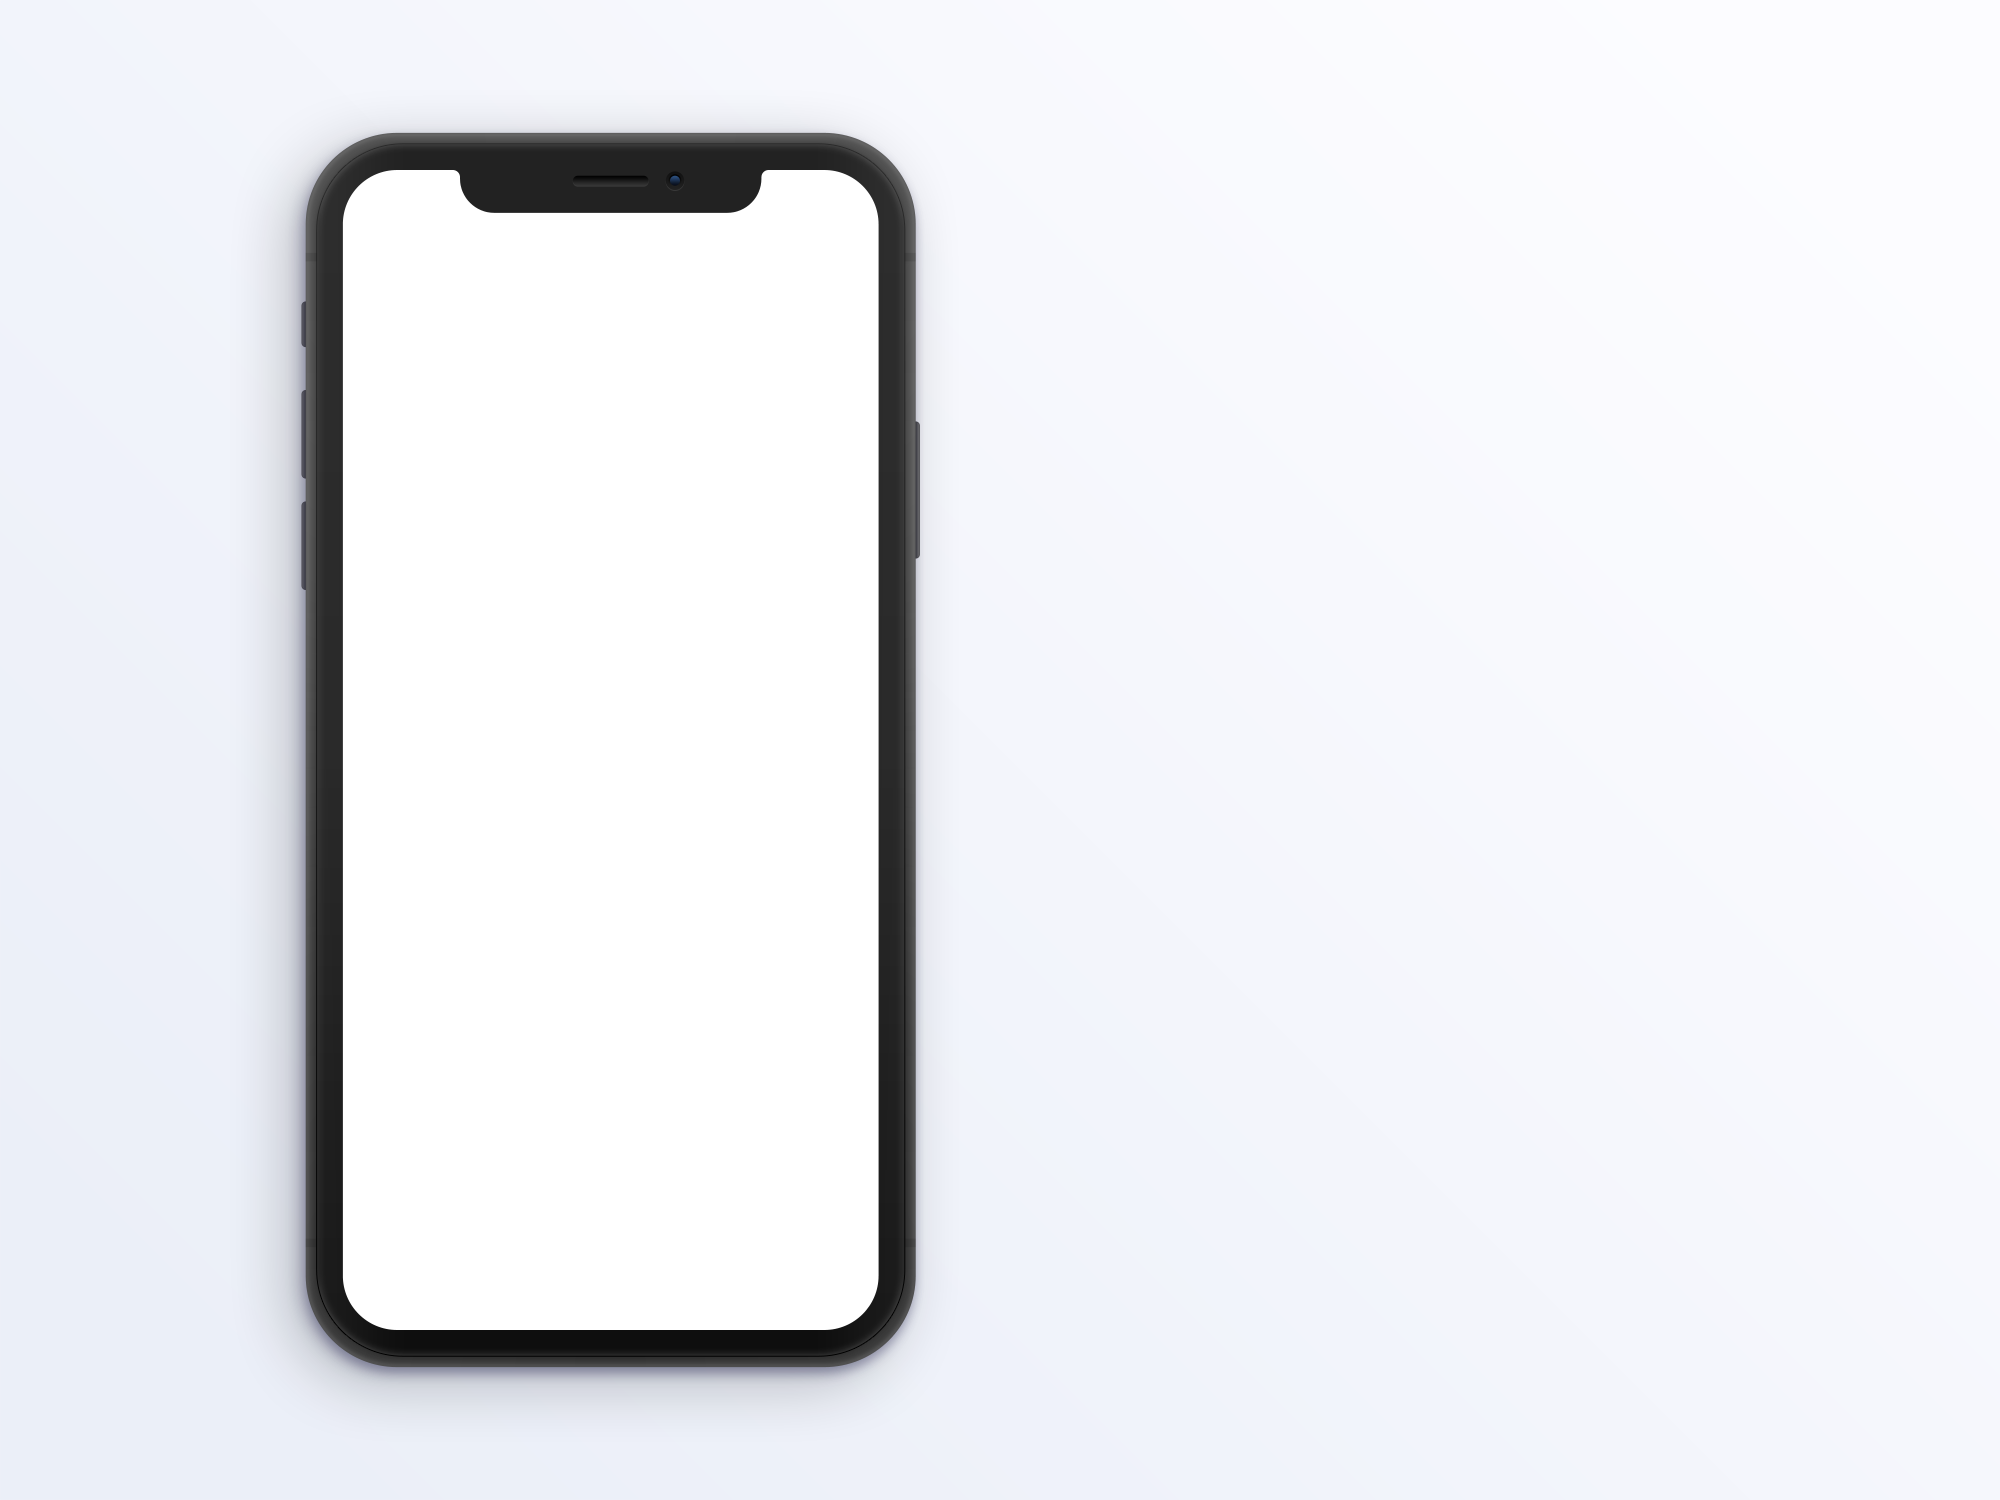 Space Gray iPhone X Clay Mockup.